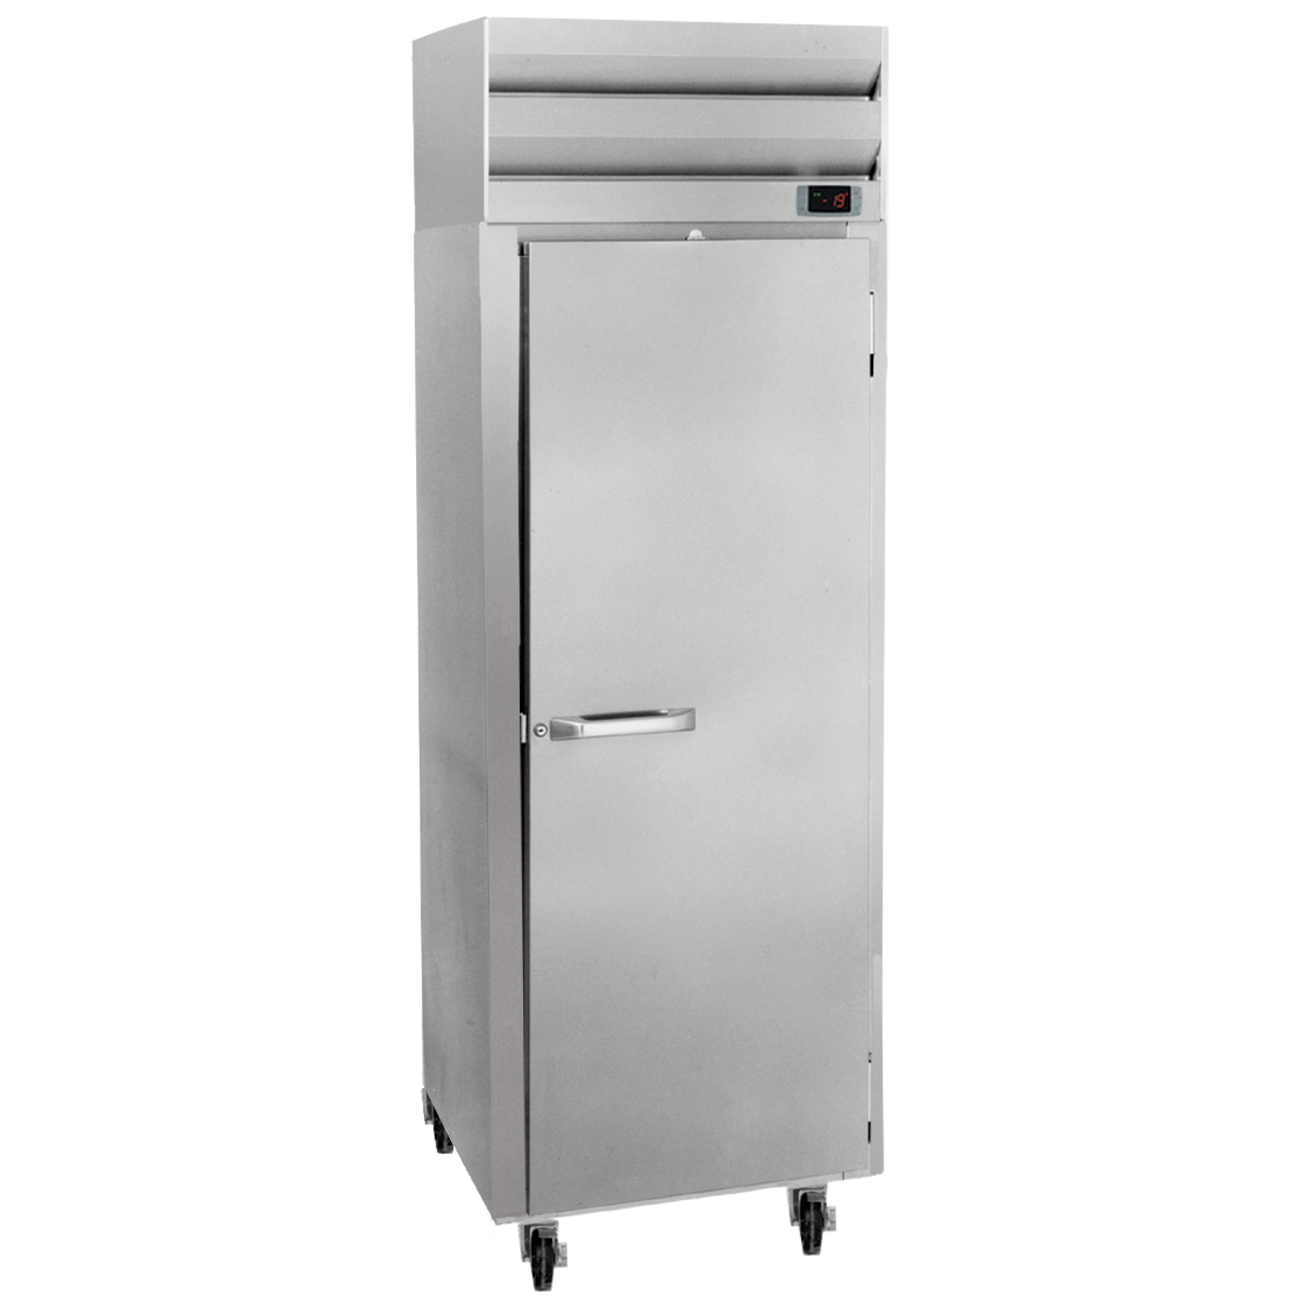 Howard-McCray R-SR22 refrigerator, reach-in